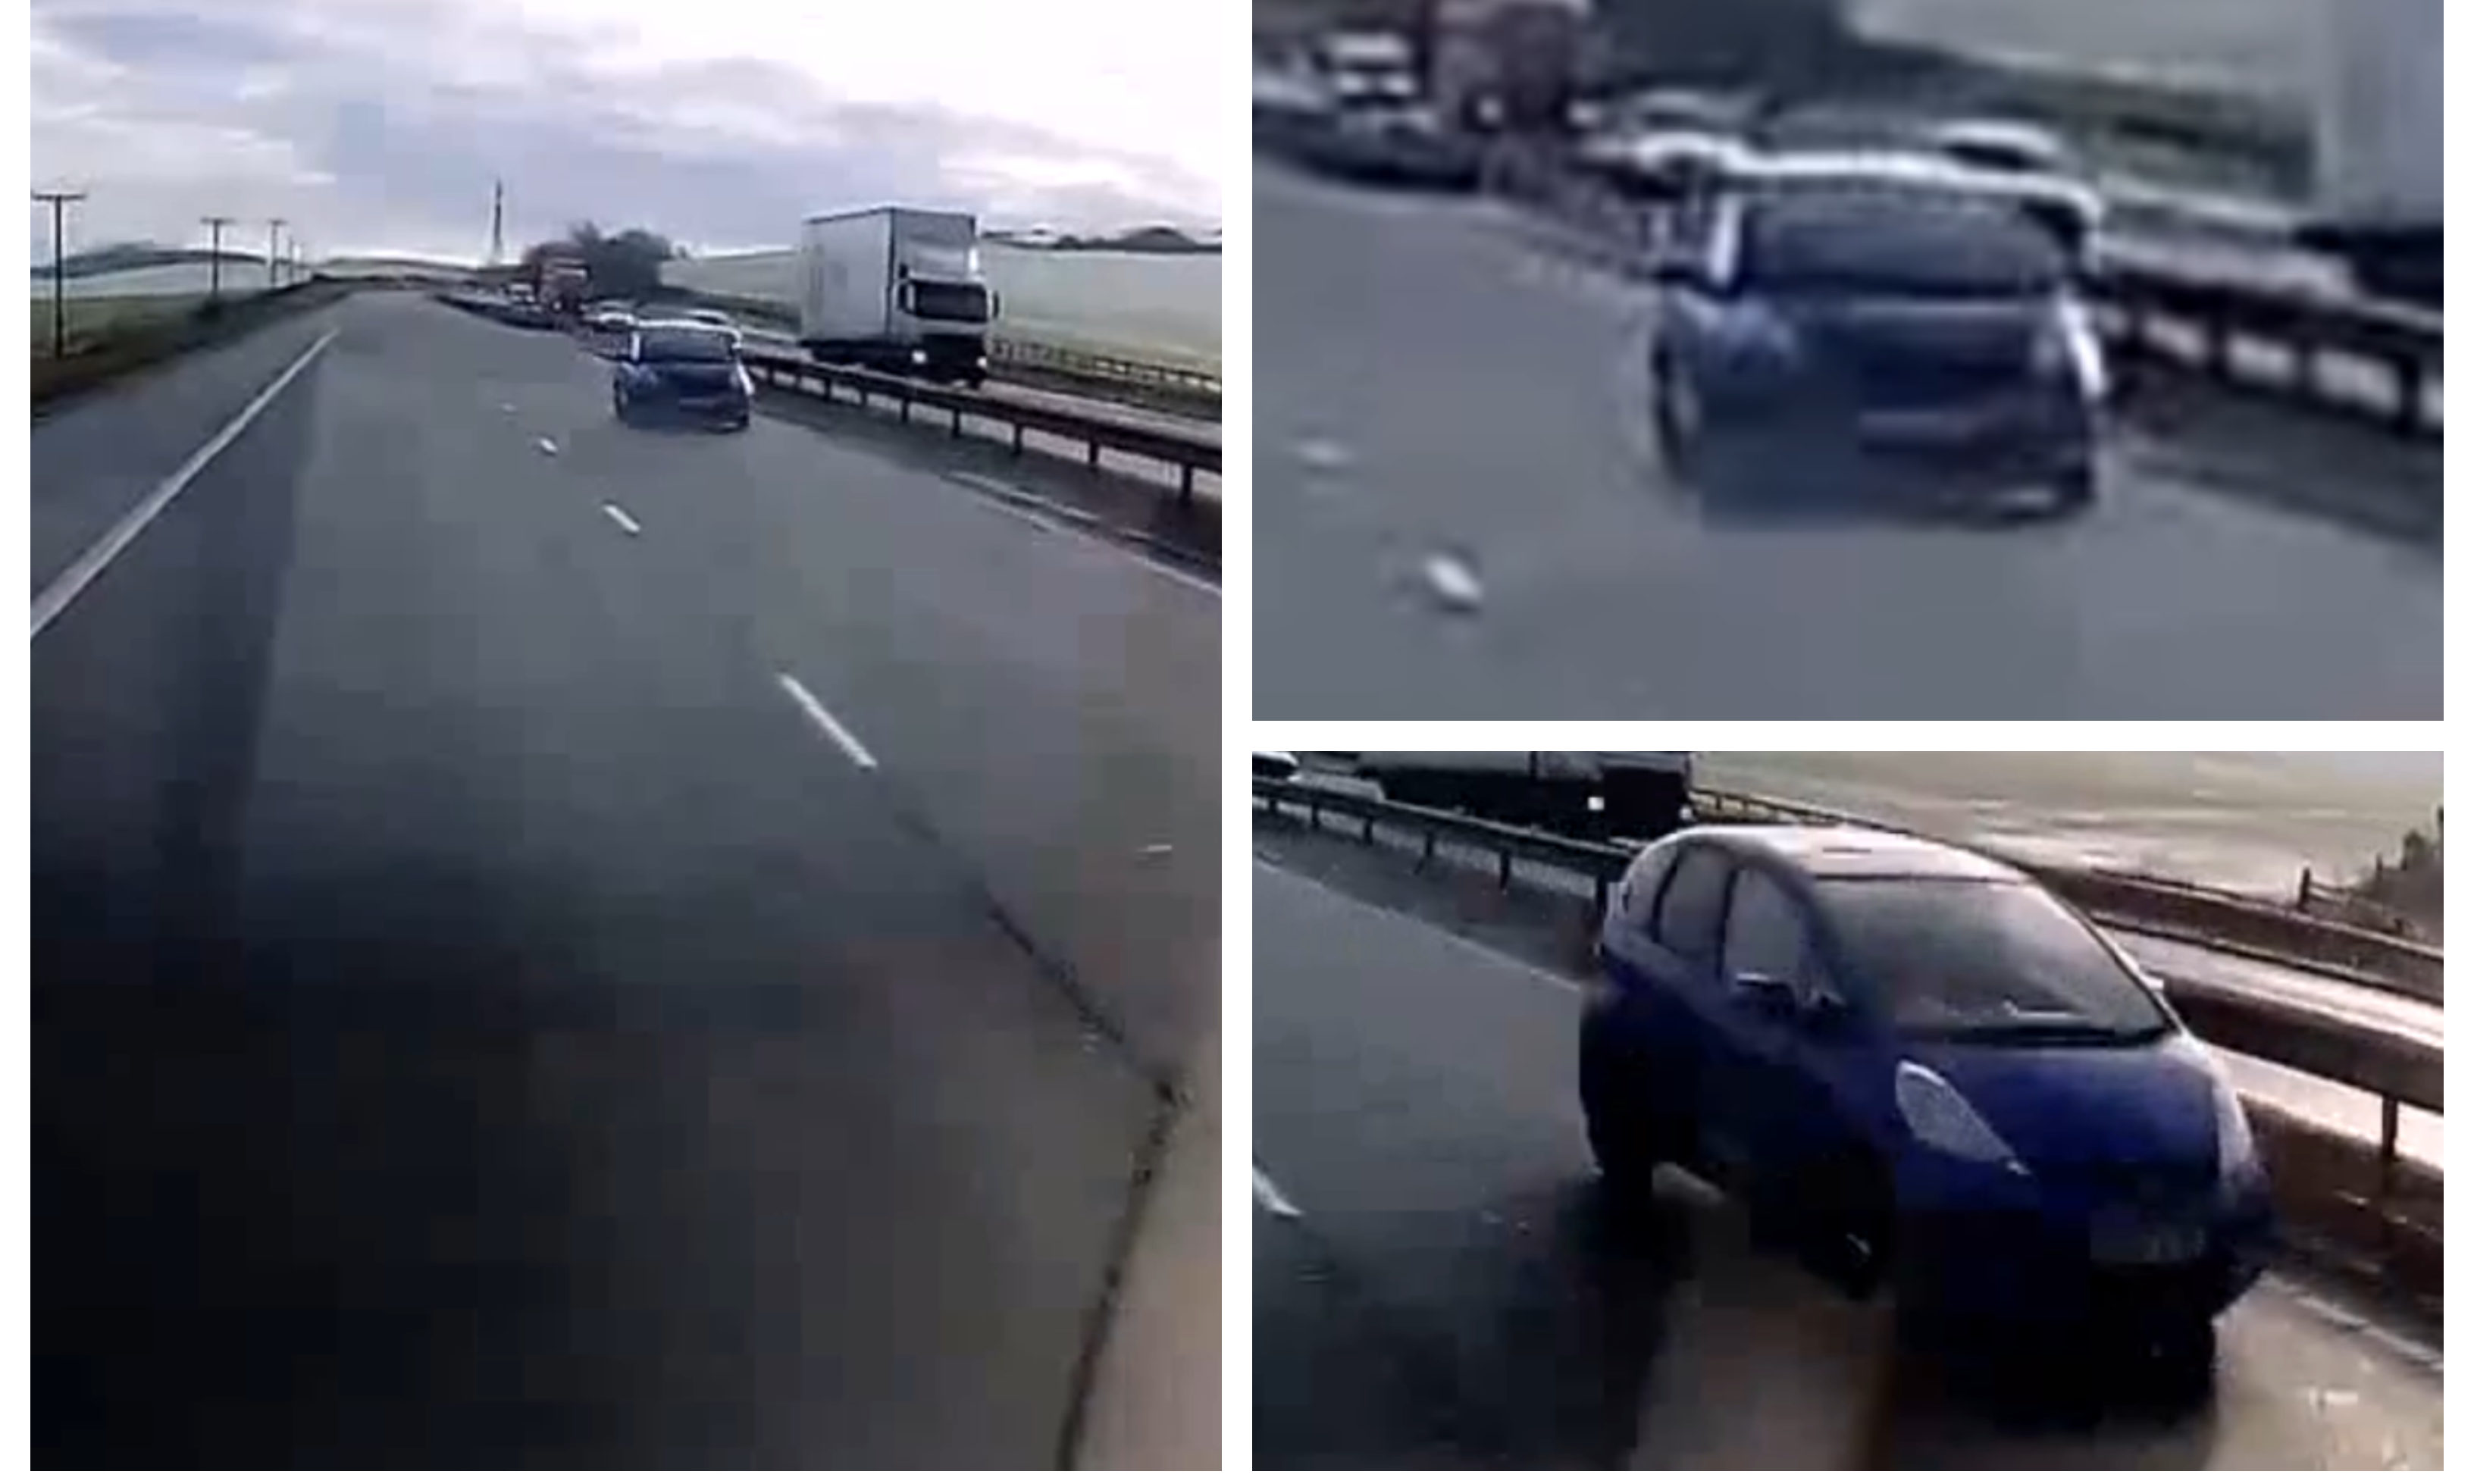 The driver heading up the M90 - on the wrong side of the road.